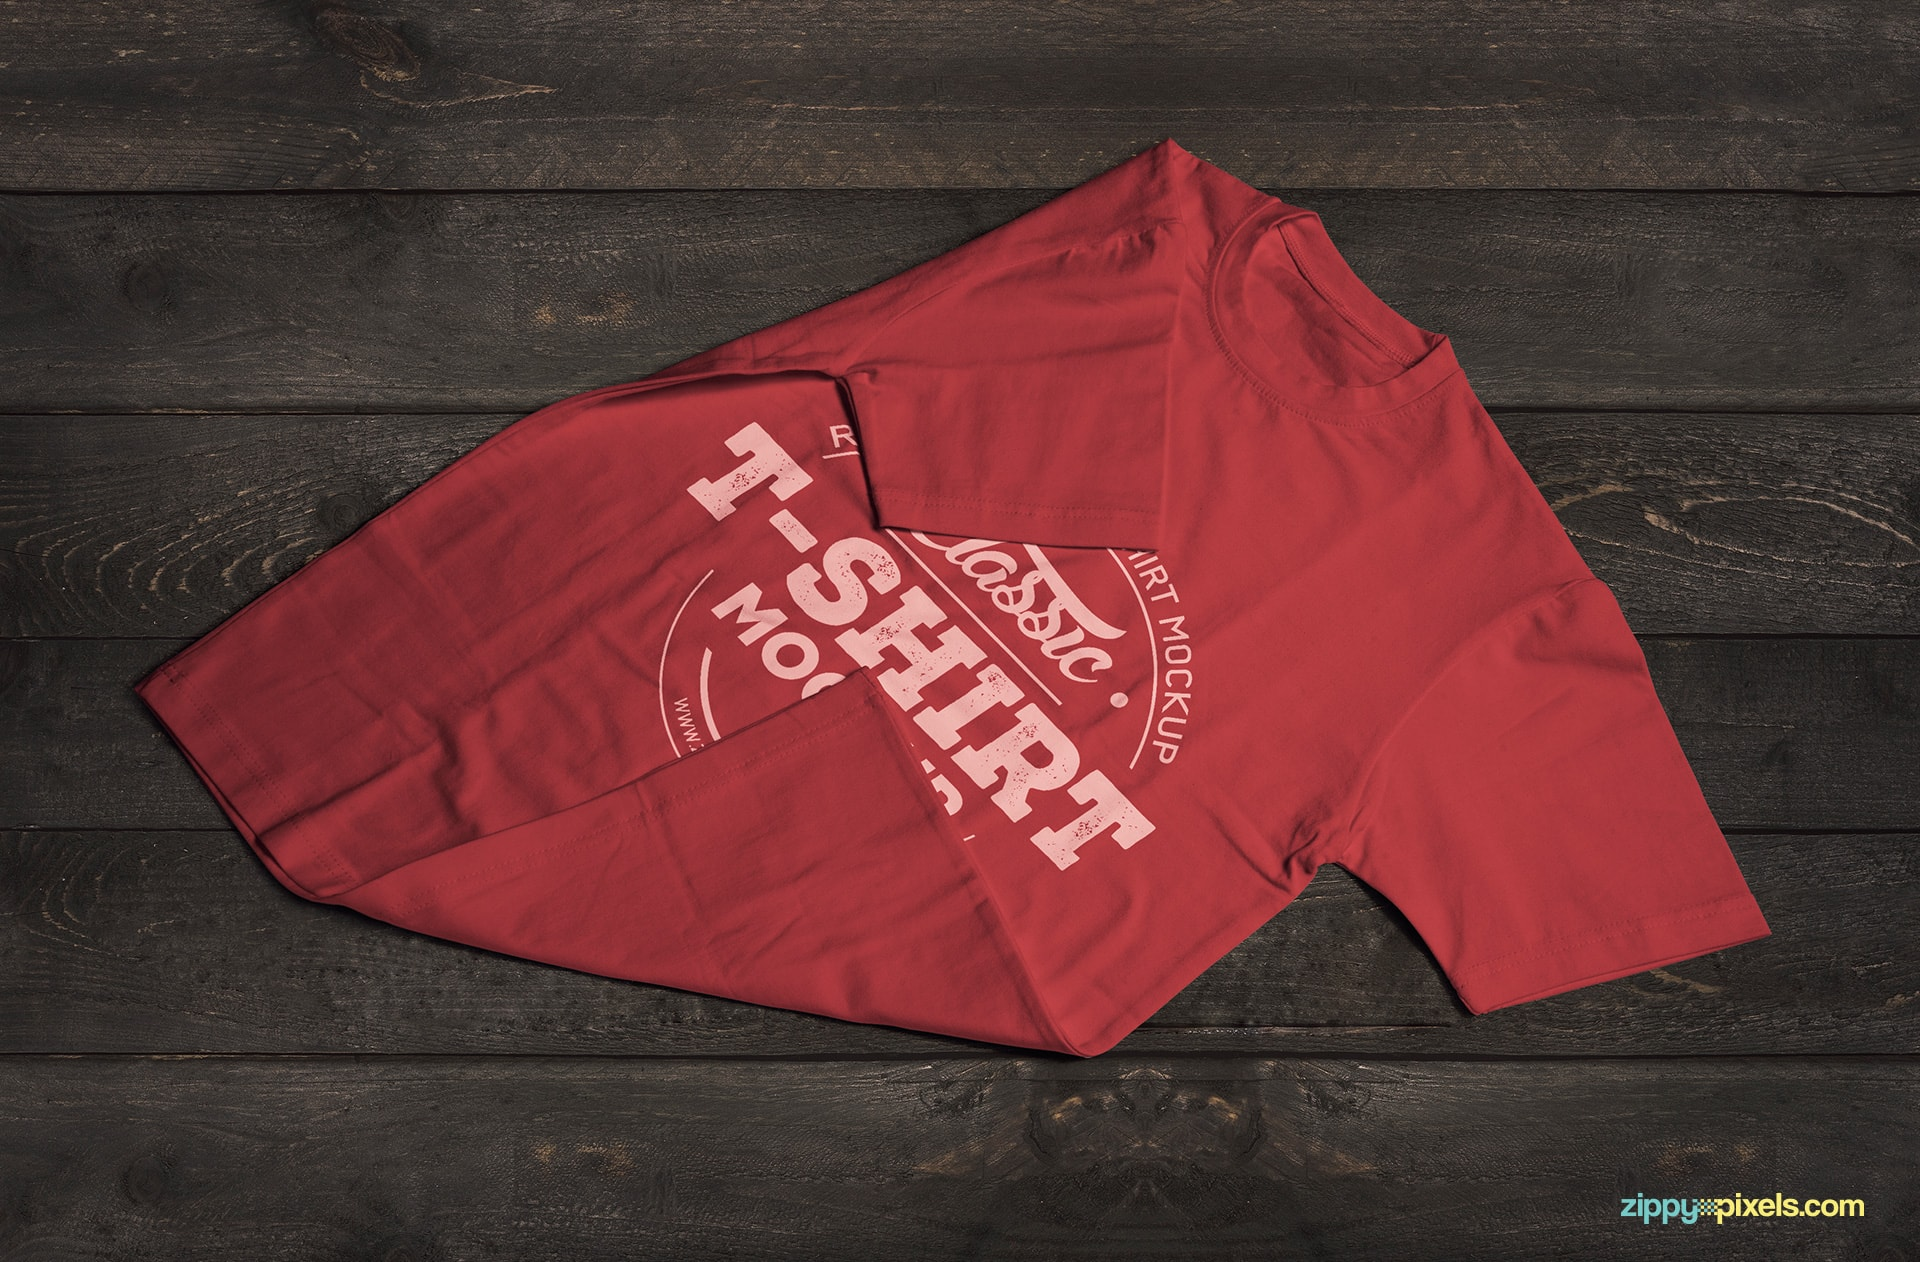 vintage-style-t-shirt-mockup-folded-sleeves